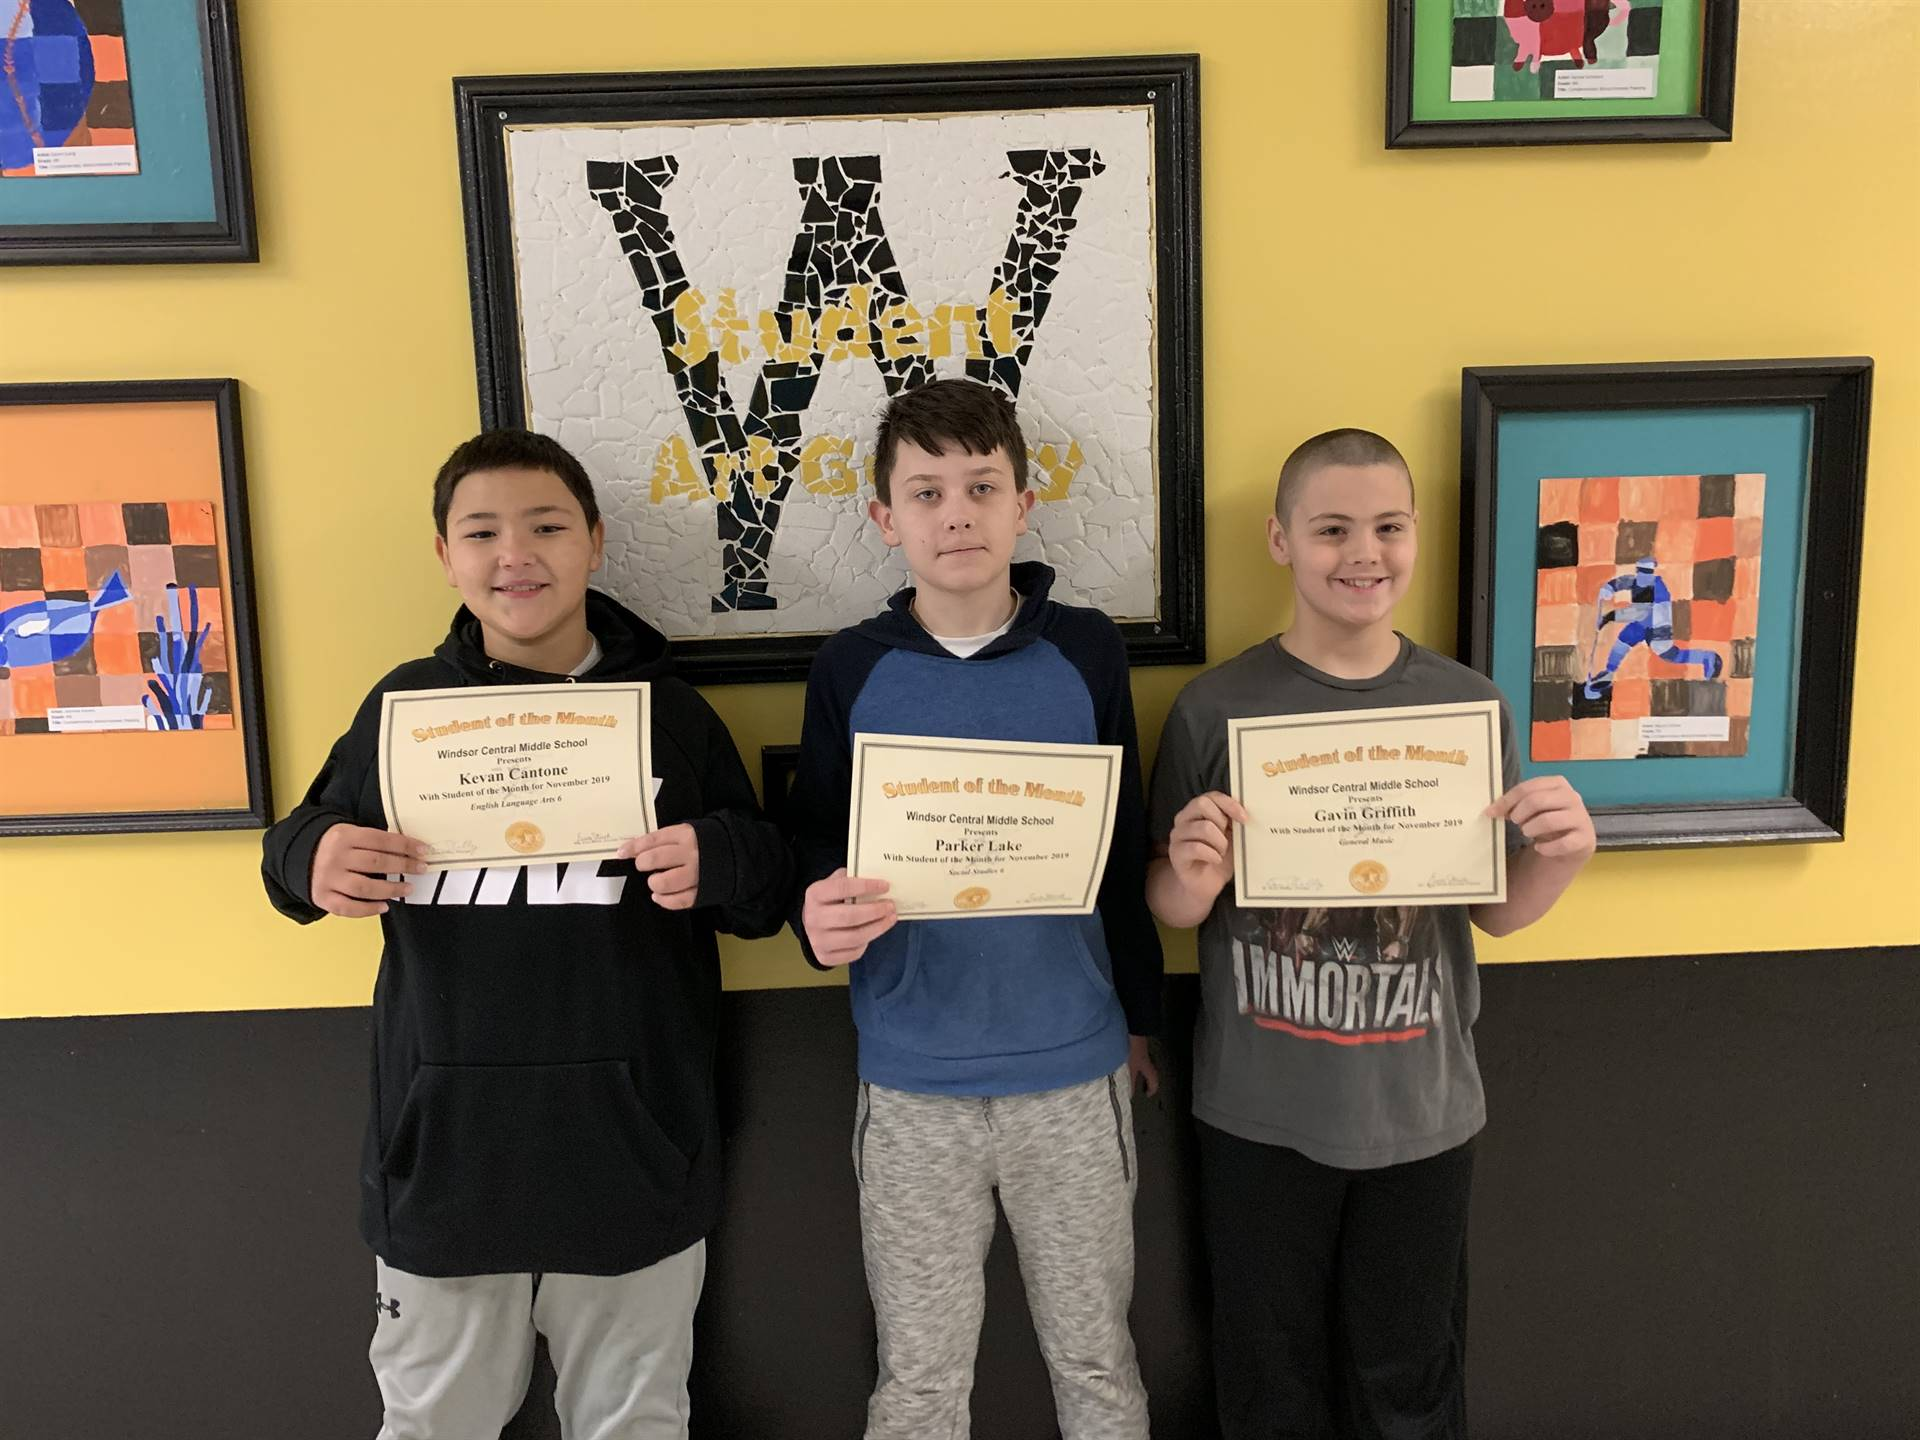 Three students holding certificates in front of a wall